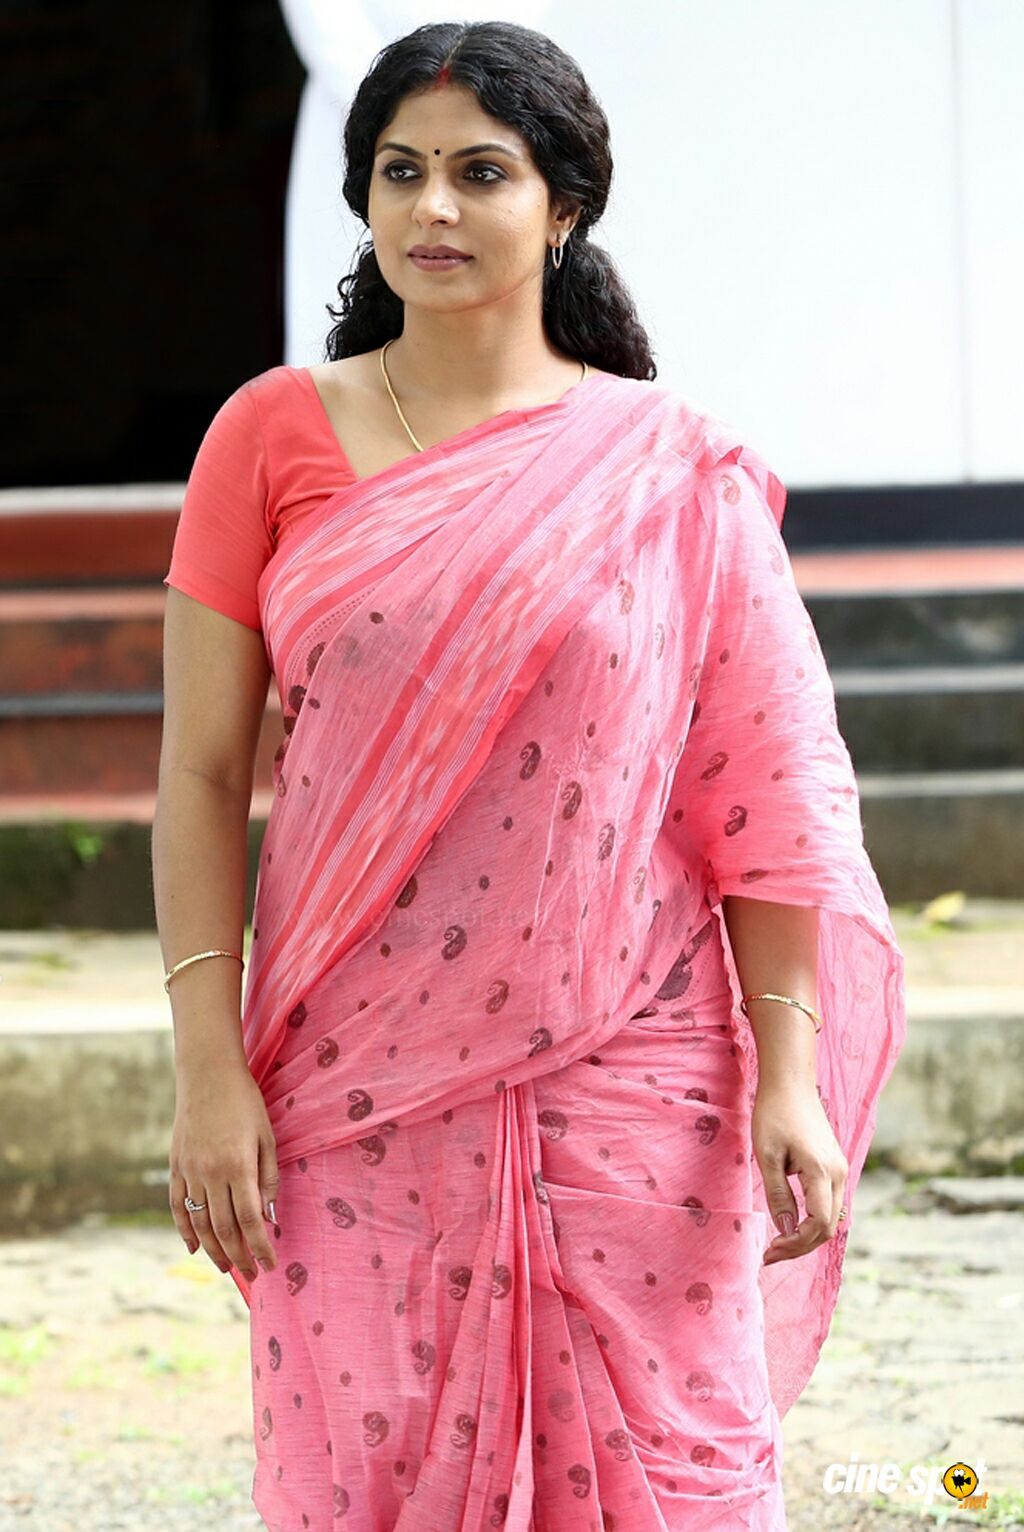 Enakku Pidicha Thevidiya: in Saree/Blouse: Dirty comments pls - Page ...